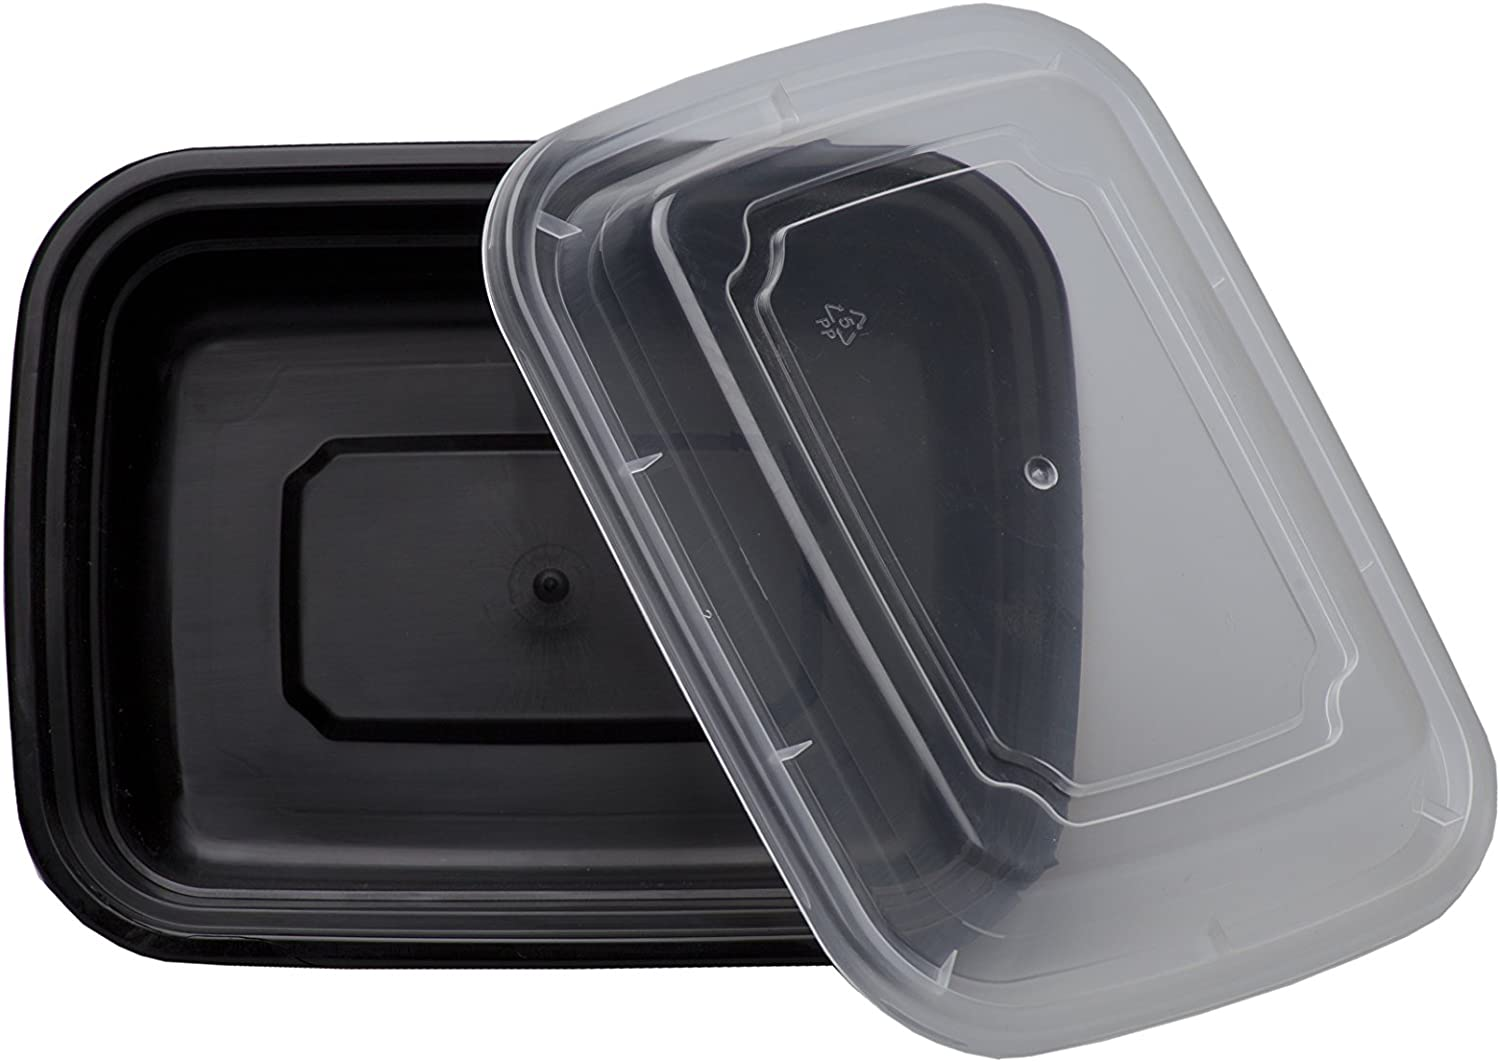 SAFEPRO 12 security oz. 67% OFF of fixed price Black Rectangular with Cle Container Microwavable